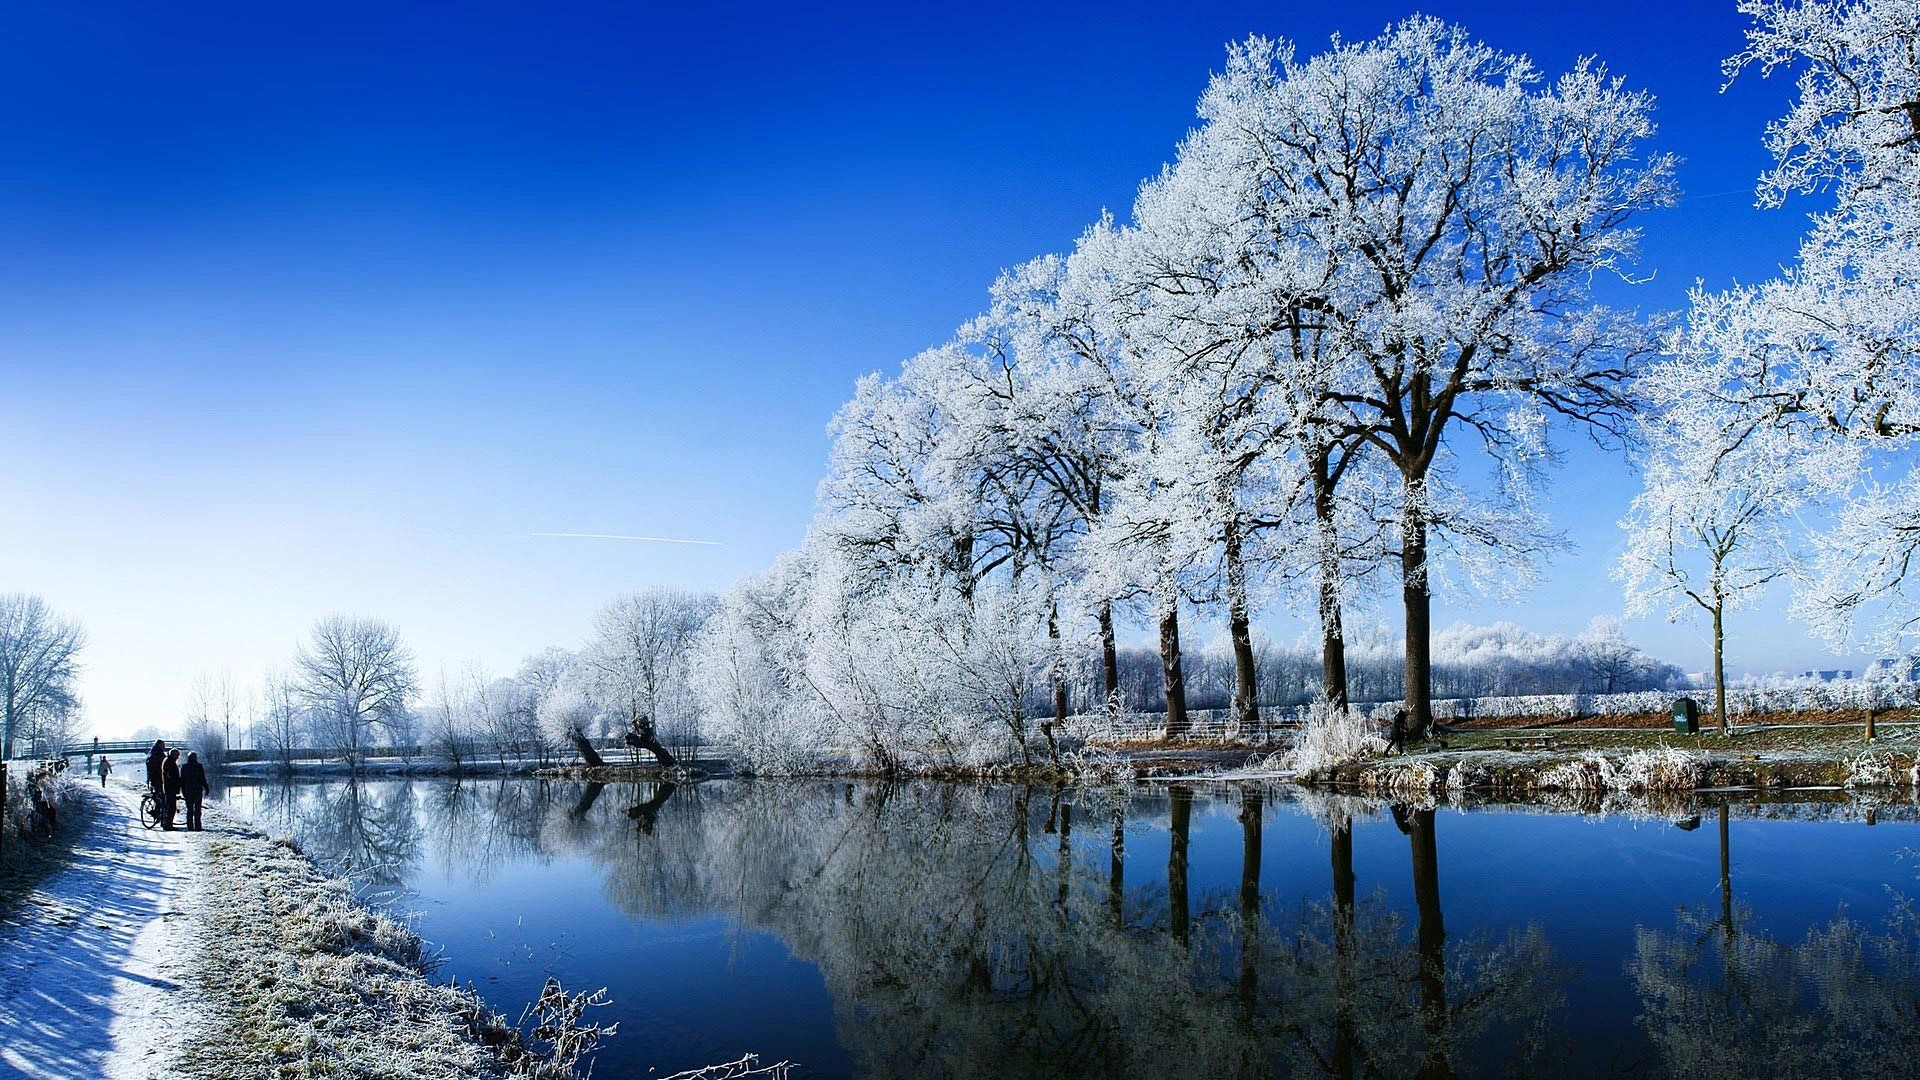 Winter Snow Scenes Good Wallpaper